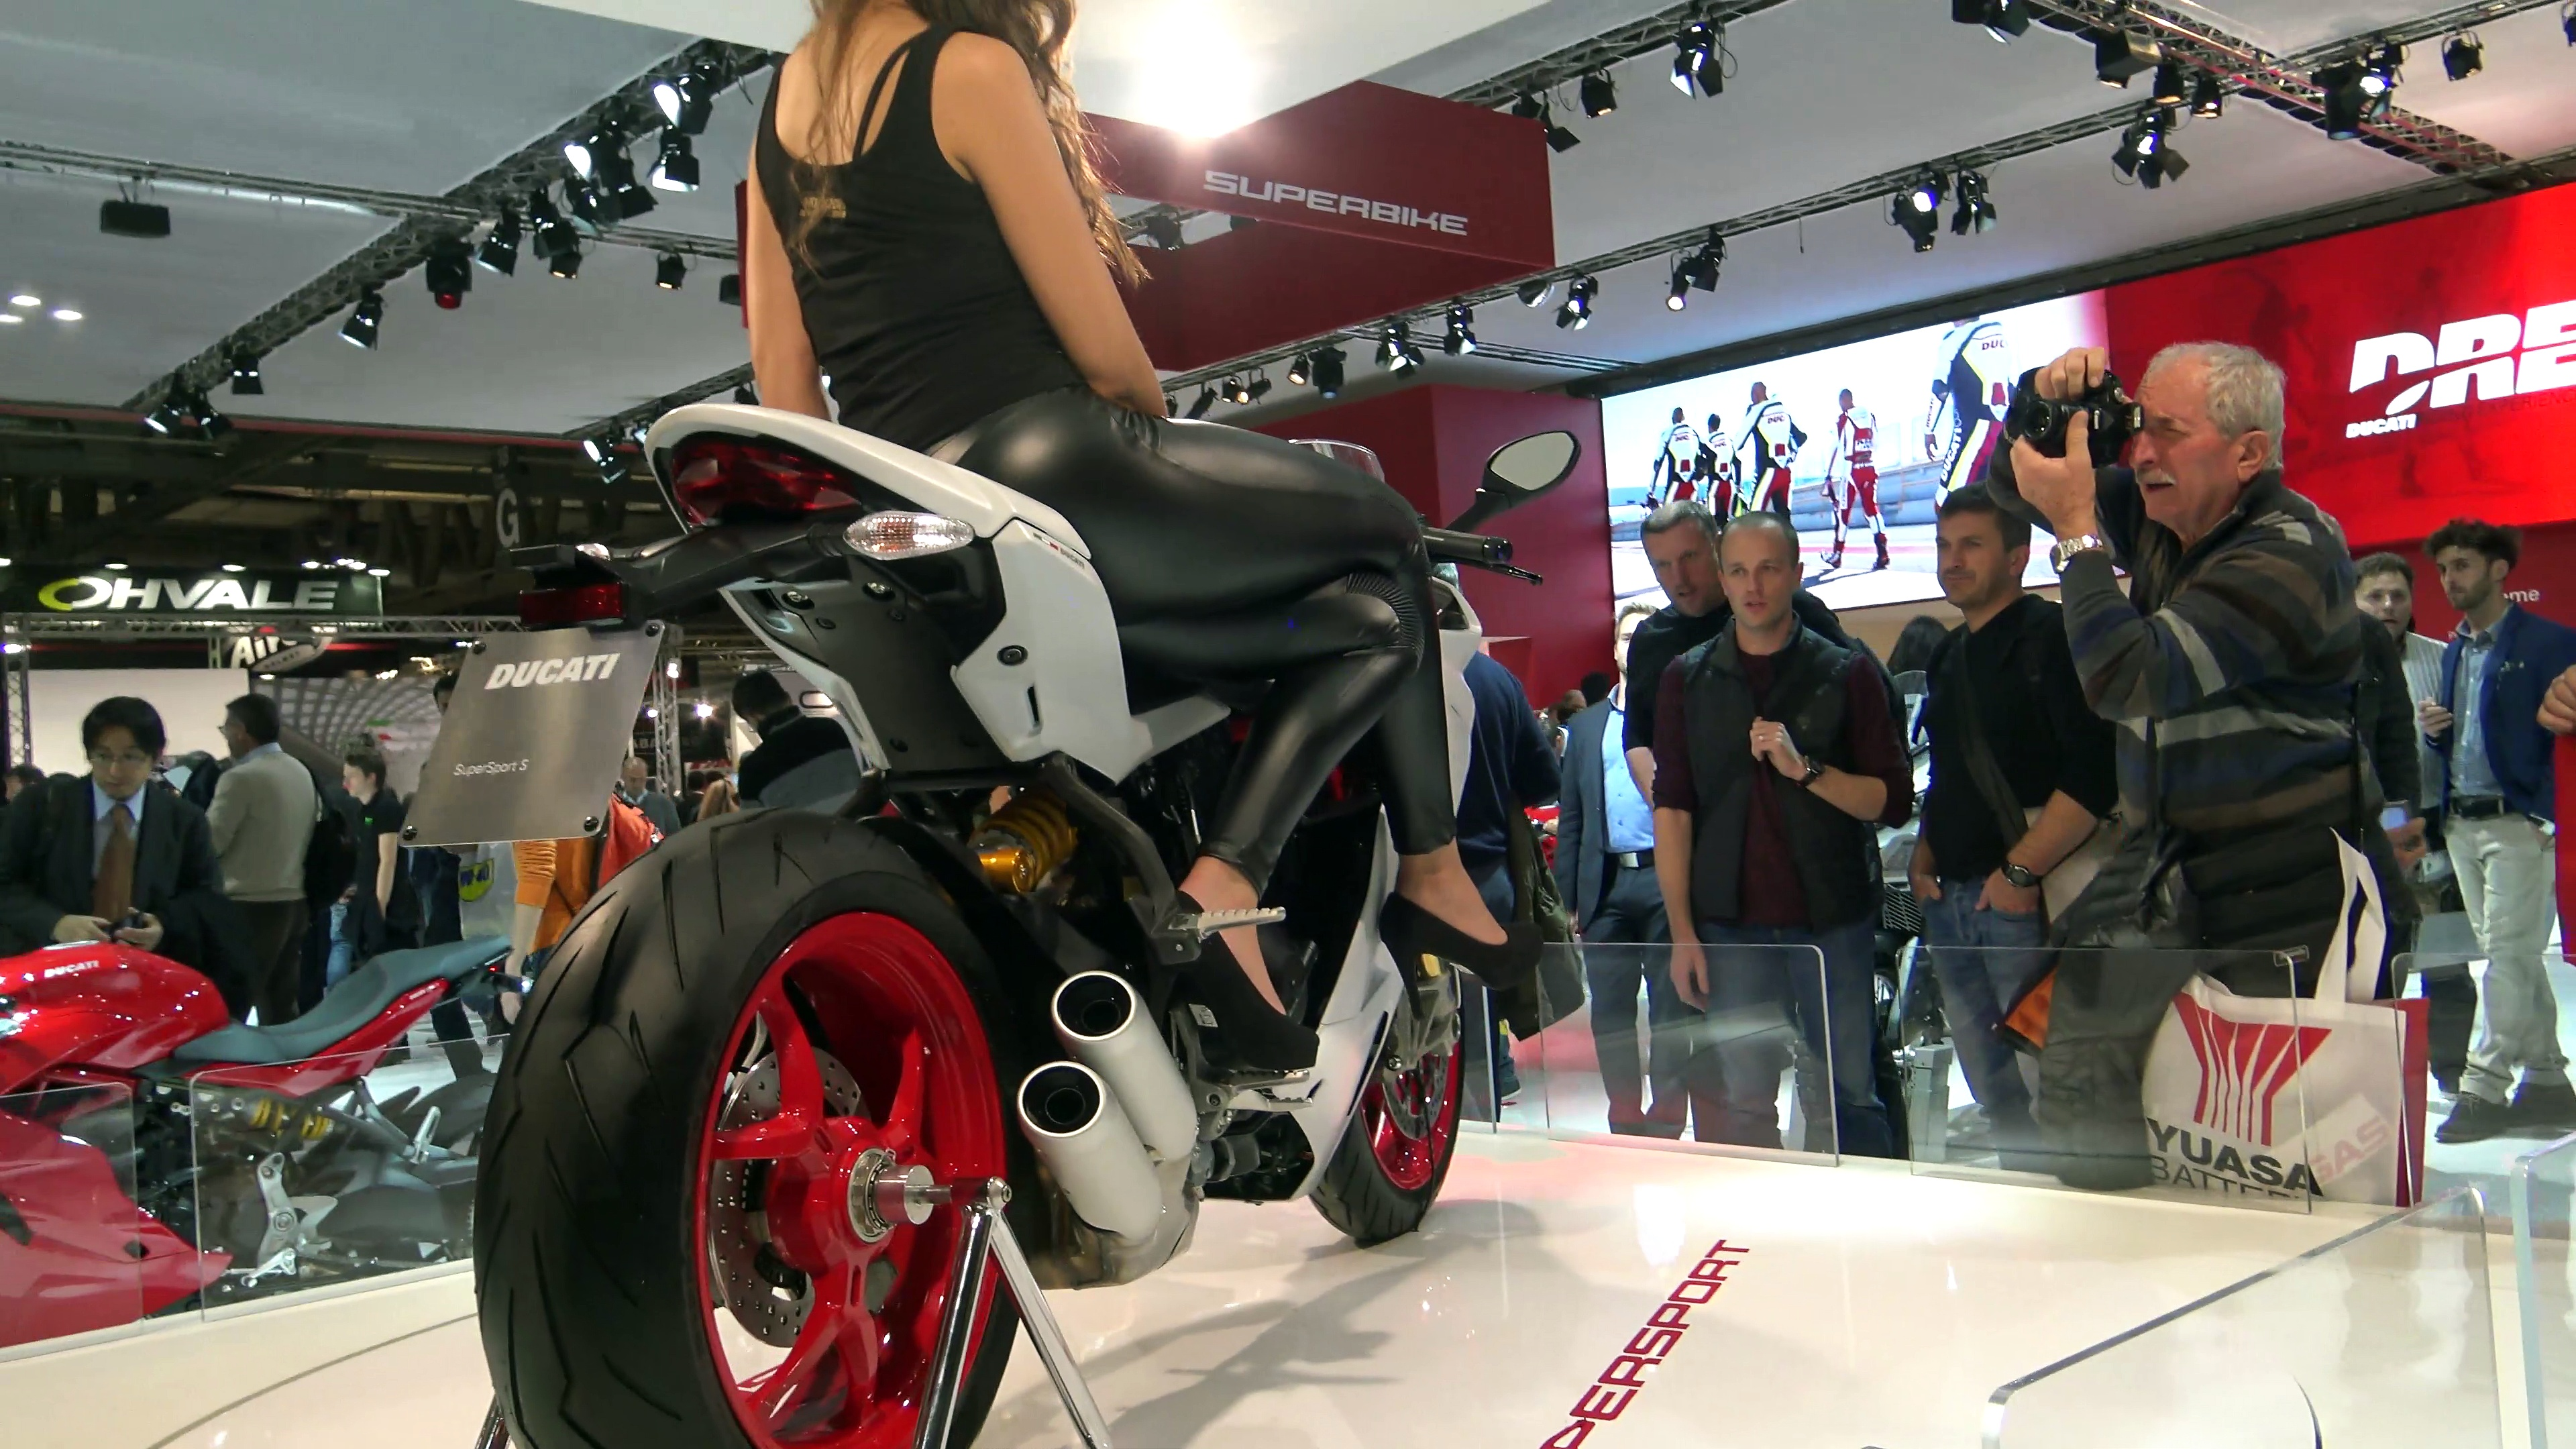 DUCATI PANIGALE SUPERSPORT